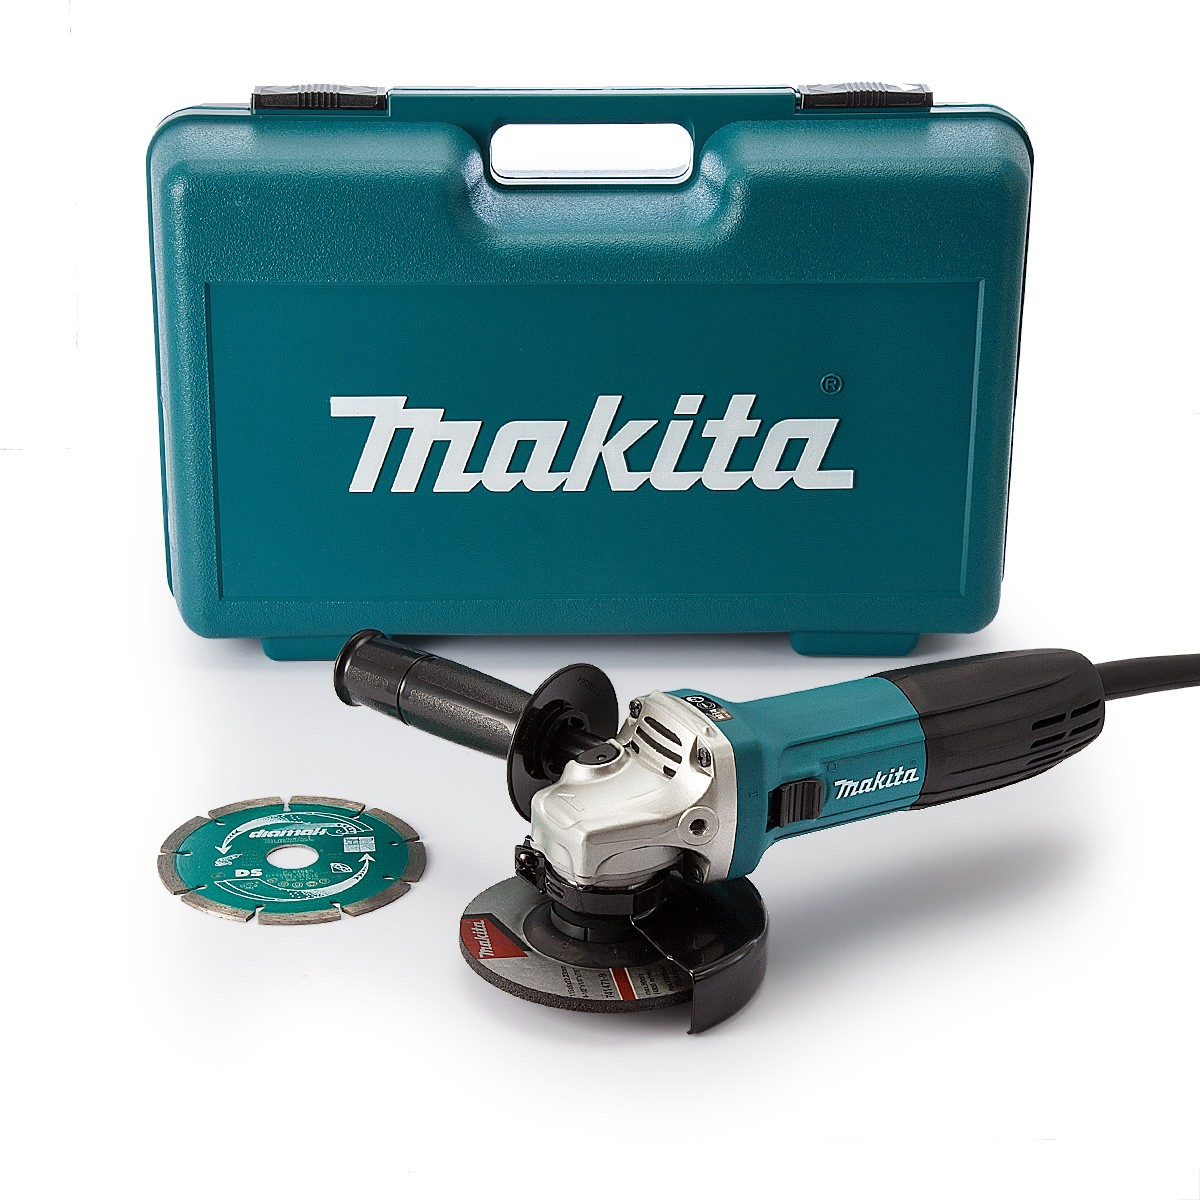 Makita GA4530RKD 115mm Slim Angle Grinder with Anti-Restart & Diamond Blade in Carry Case